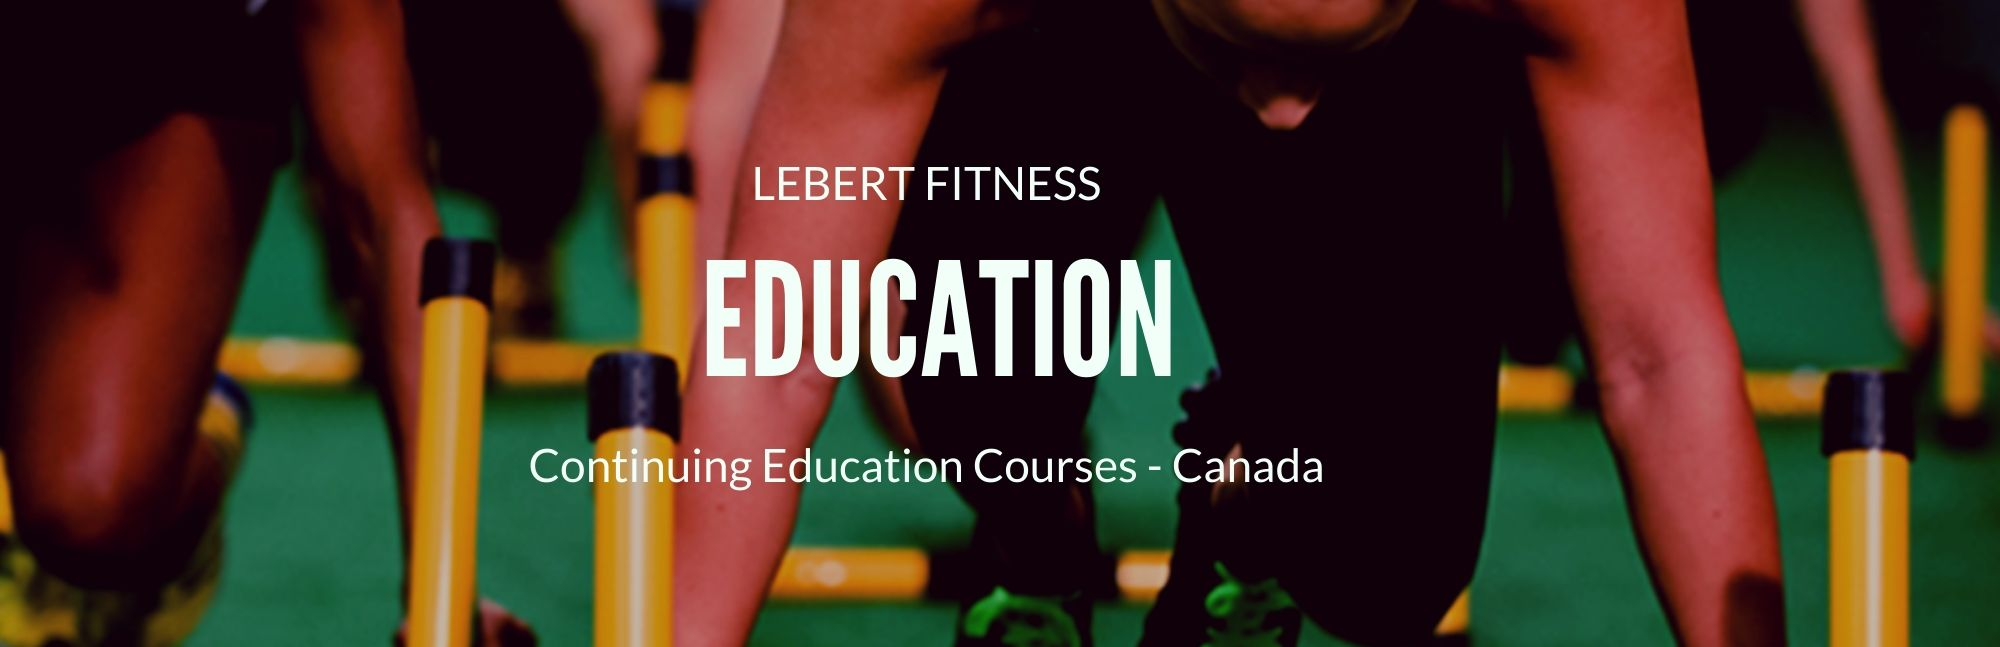 Lebert Fitness Continuing Education Courses in Canada